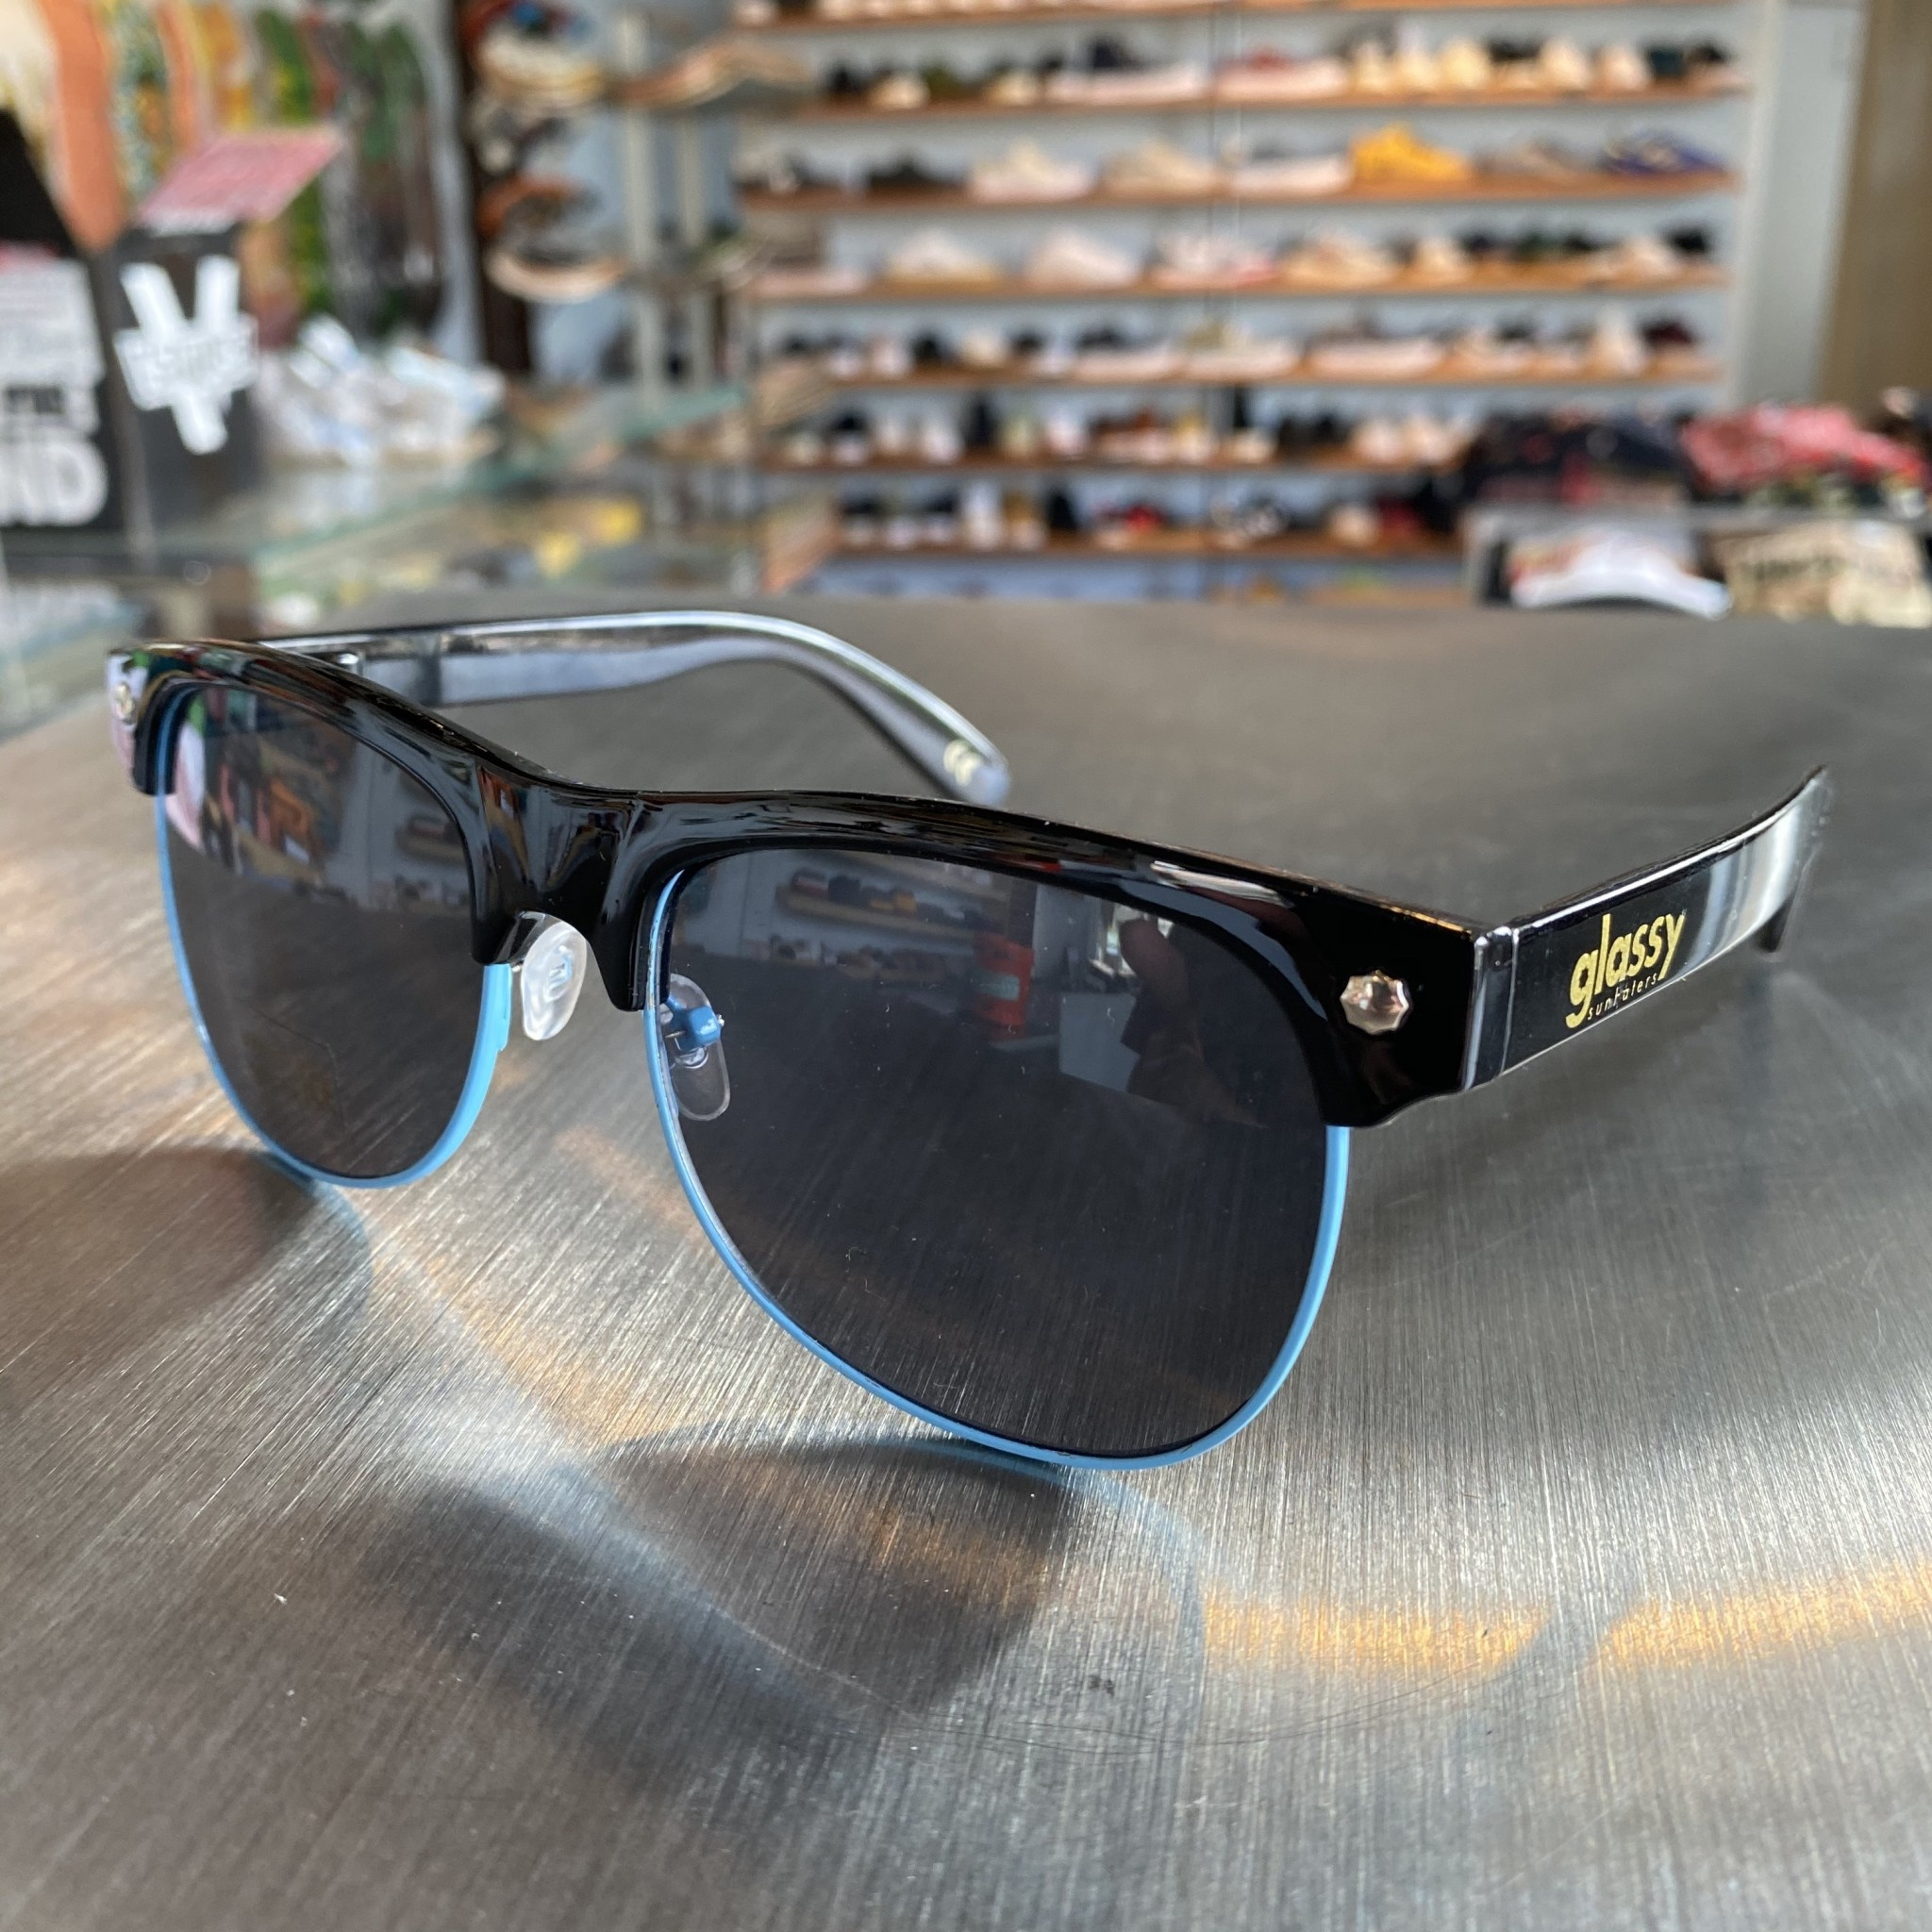 Glassy Sunglasses Shredder Blk/Blue Tri